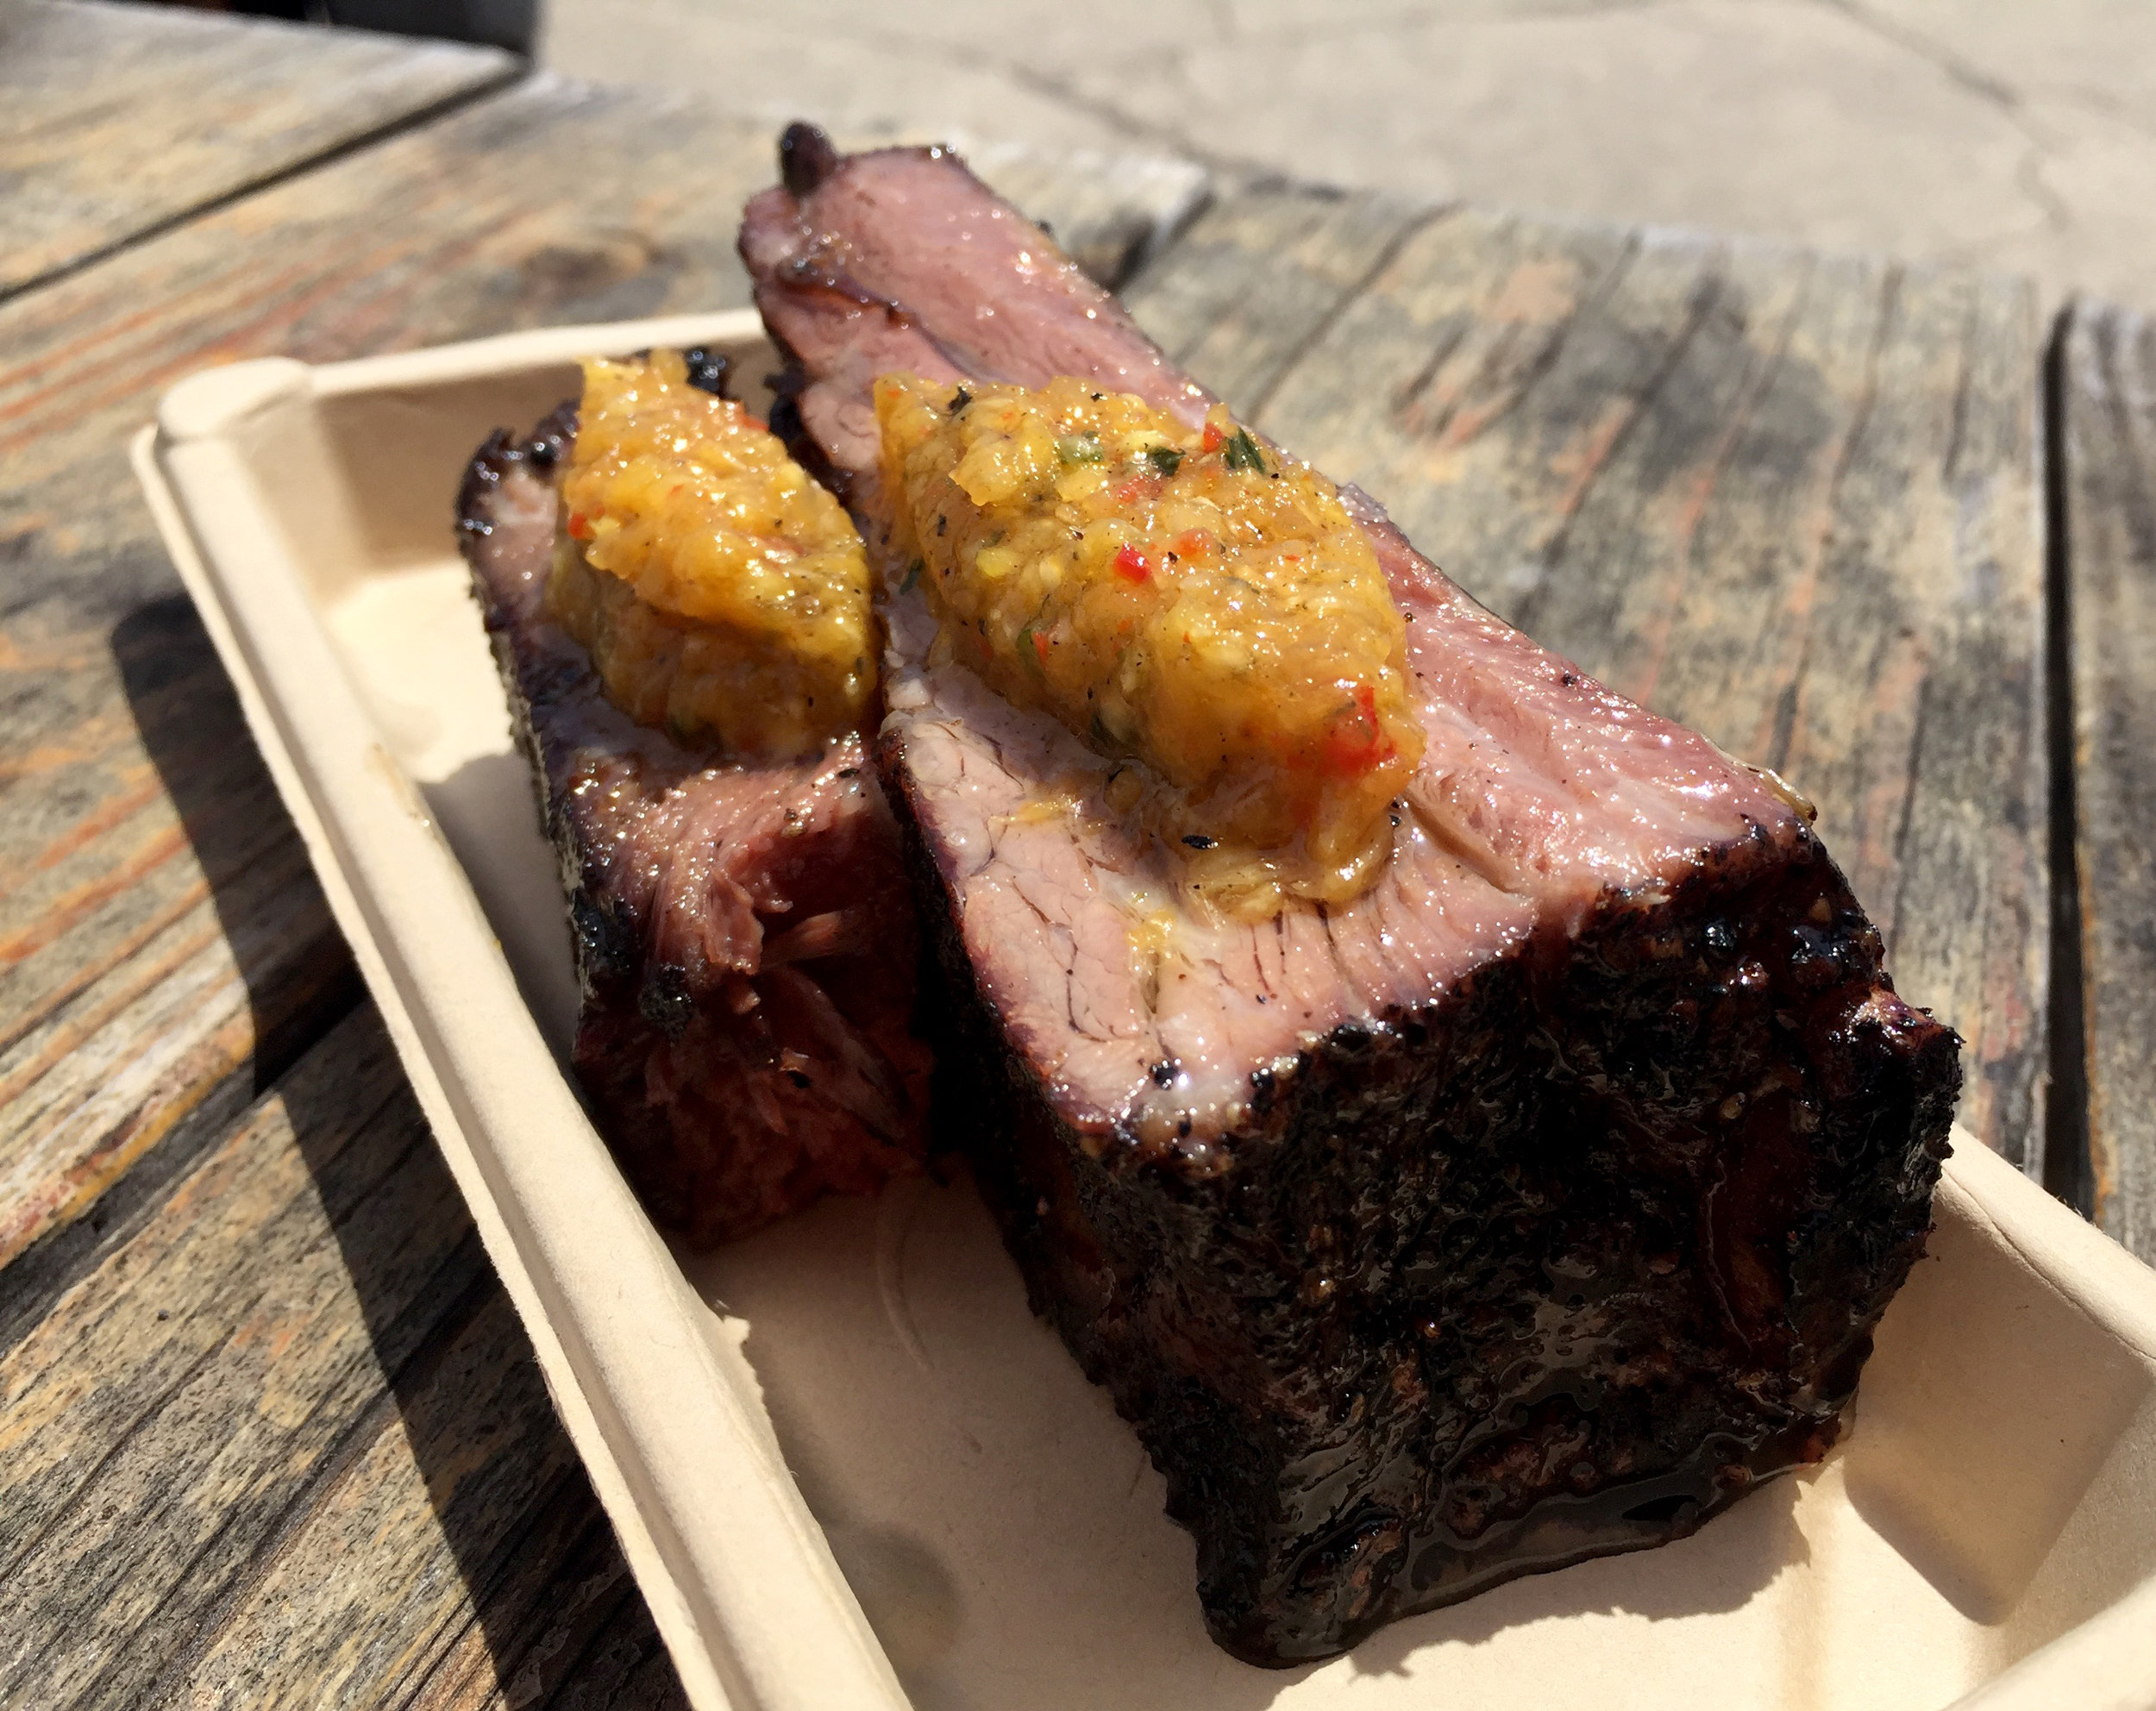 Photo Credit:  Anna Bryant   This is my #mcm every week....that stands for meat crush Monday, right? this beef rib is so tender it falls off the bone and goes great with the pineapple salsa on top.